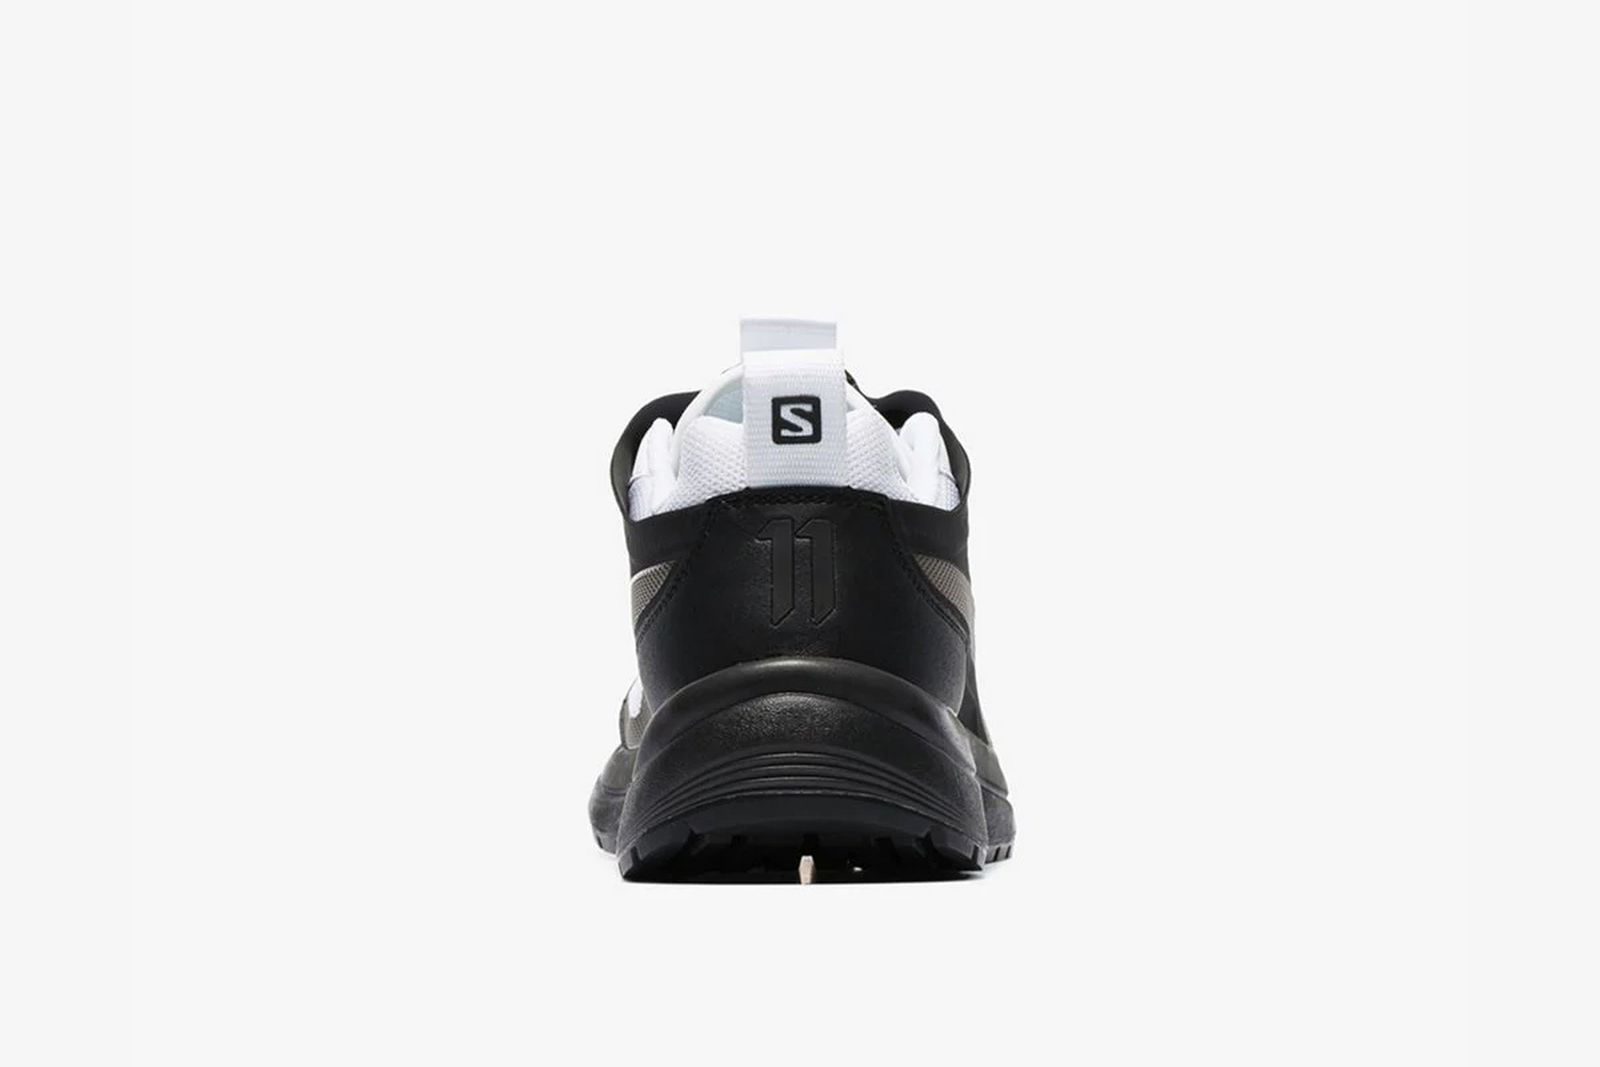 11 by bbs salomon slab bamba 2 low release date price 11 by Boris Bidjan Saberi for Salomon